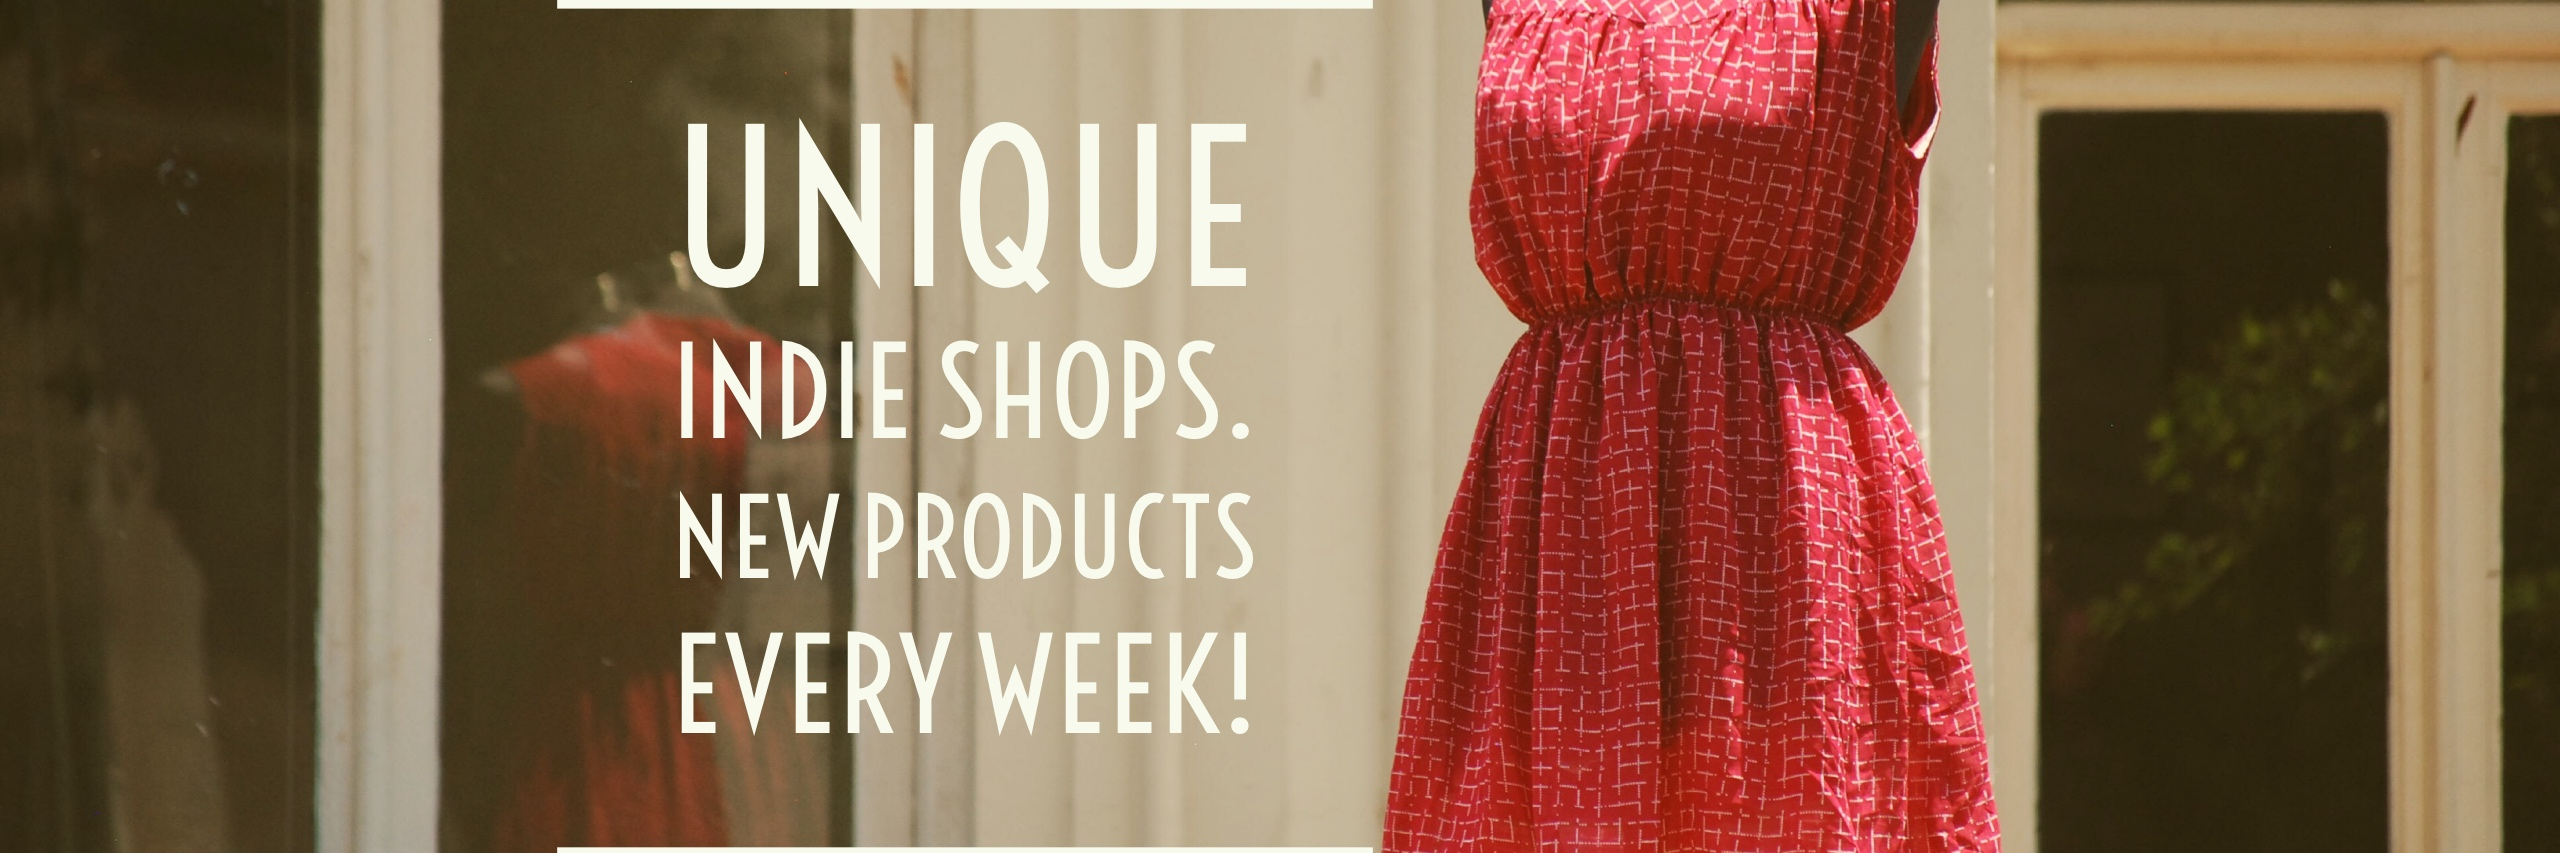 Wickedly Chic is all about: Prices for all budgets. Unique indie designs. New products every week!